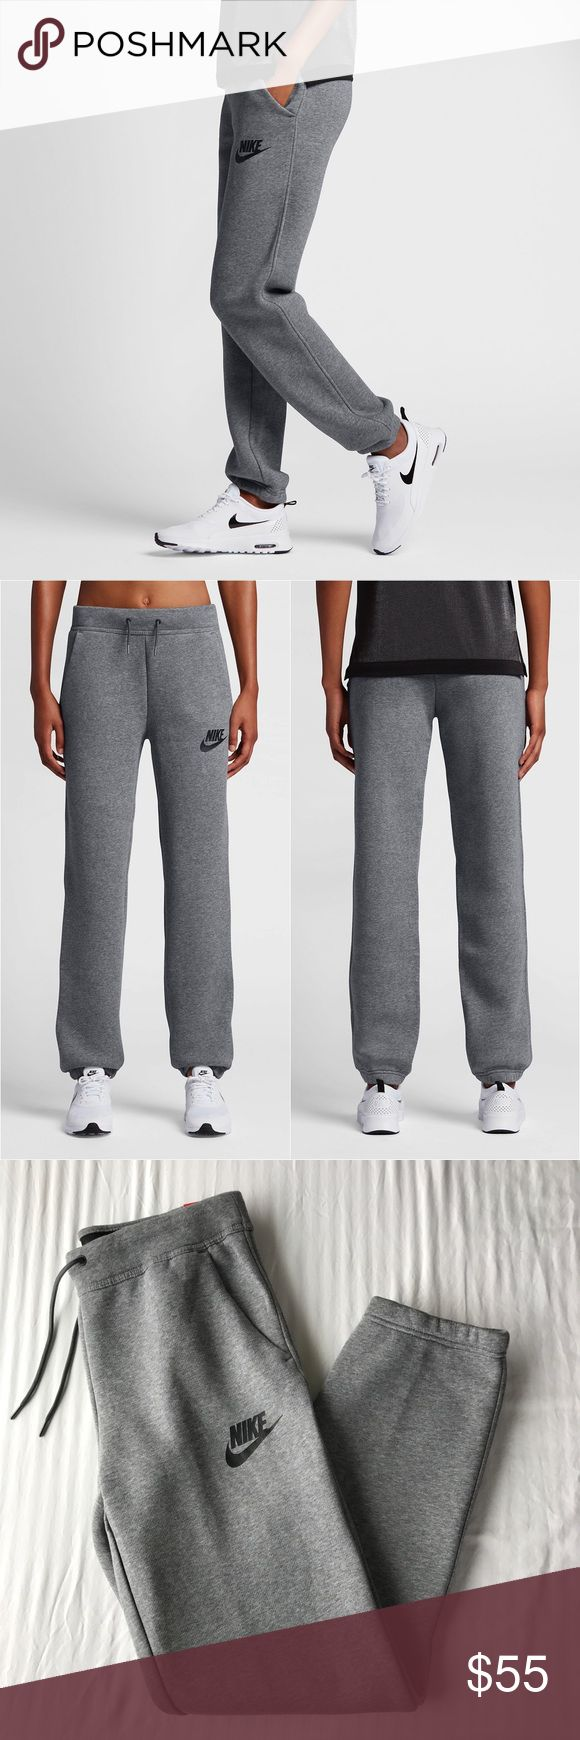 Nike Grey Relaxed Sweatpants •The Nike Rally Women's Sweatpants feature soft fleece fabric in a relaxed silhouette and for exceptional comfort. 63% cotton/19% polyester/18% rayon.  •Size Medium, relaxed fit.  Will also fit a Large if you want a more fitted look.  •New with tag.   •NO TRADES/HOLDS/PAYPAL/MERC/VINTED/NONSENSE. Nike Pants Track Pants & Joggers